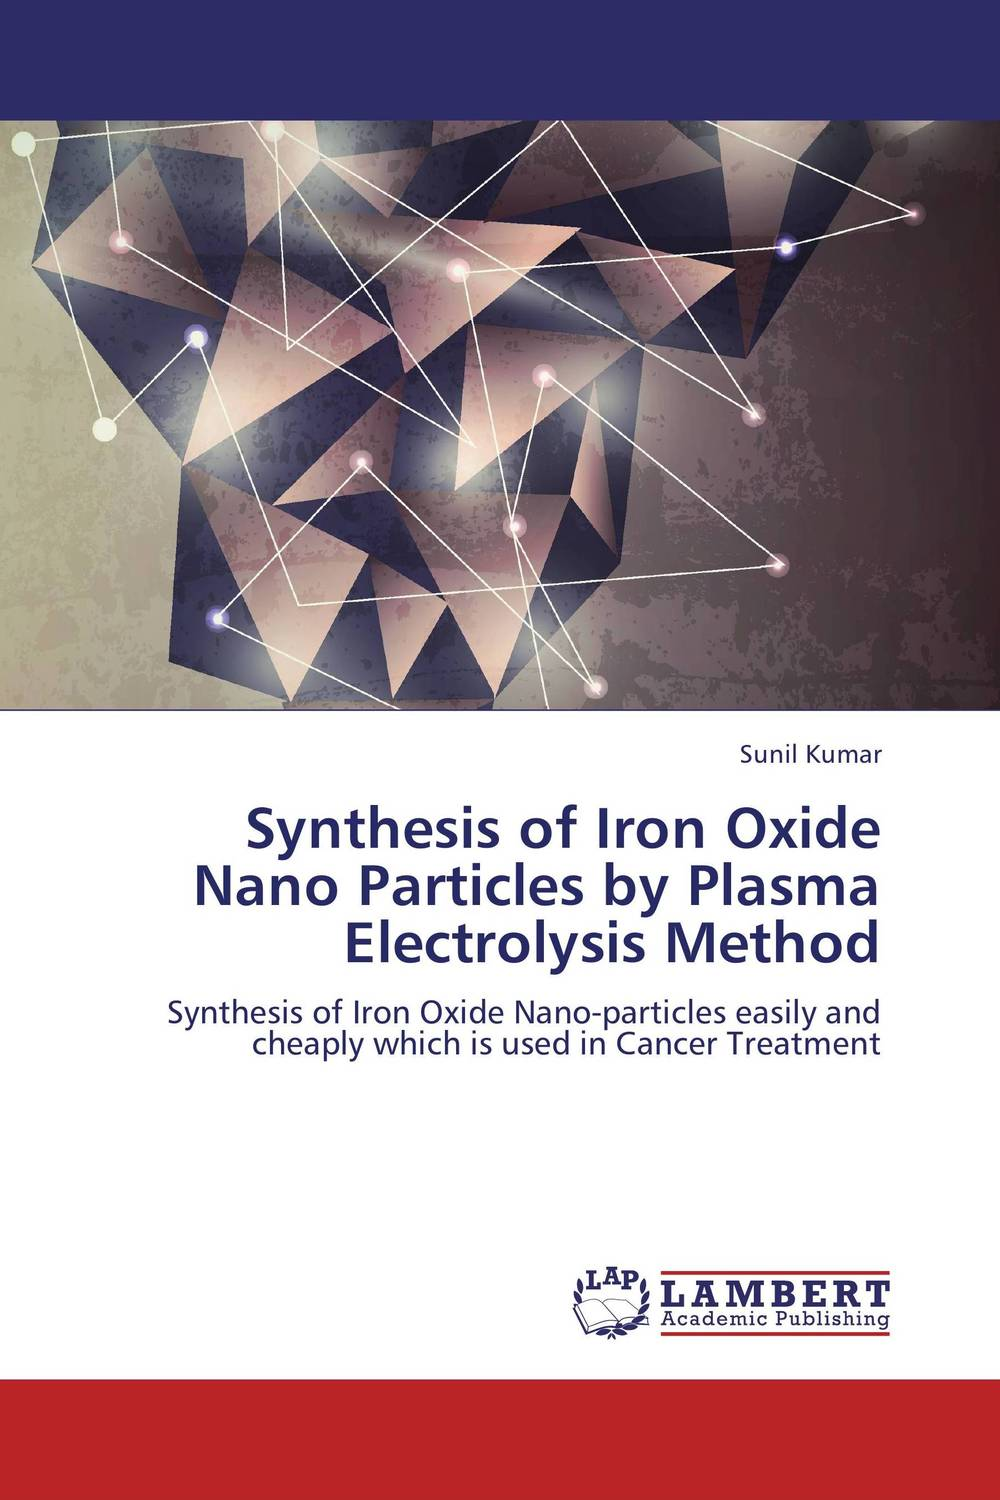 Synthesis of Iron Oxide Nano Particles by Plasma Electrolysis Method utilization of nano particles to impart functionality to textiles